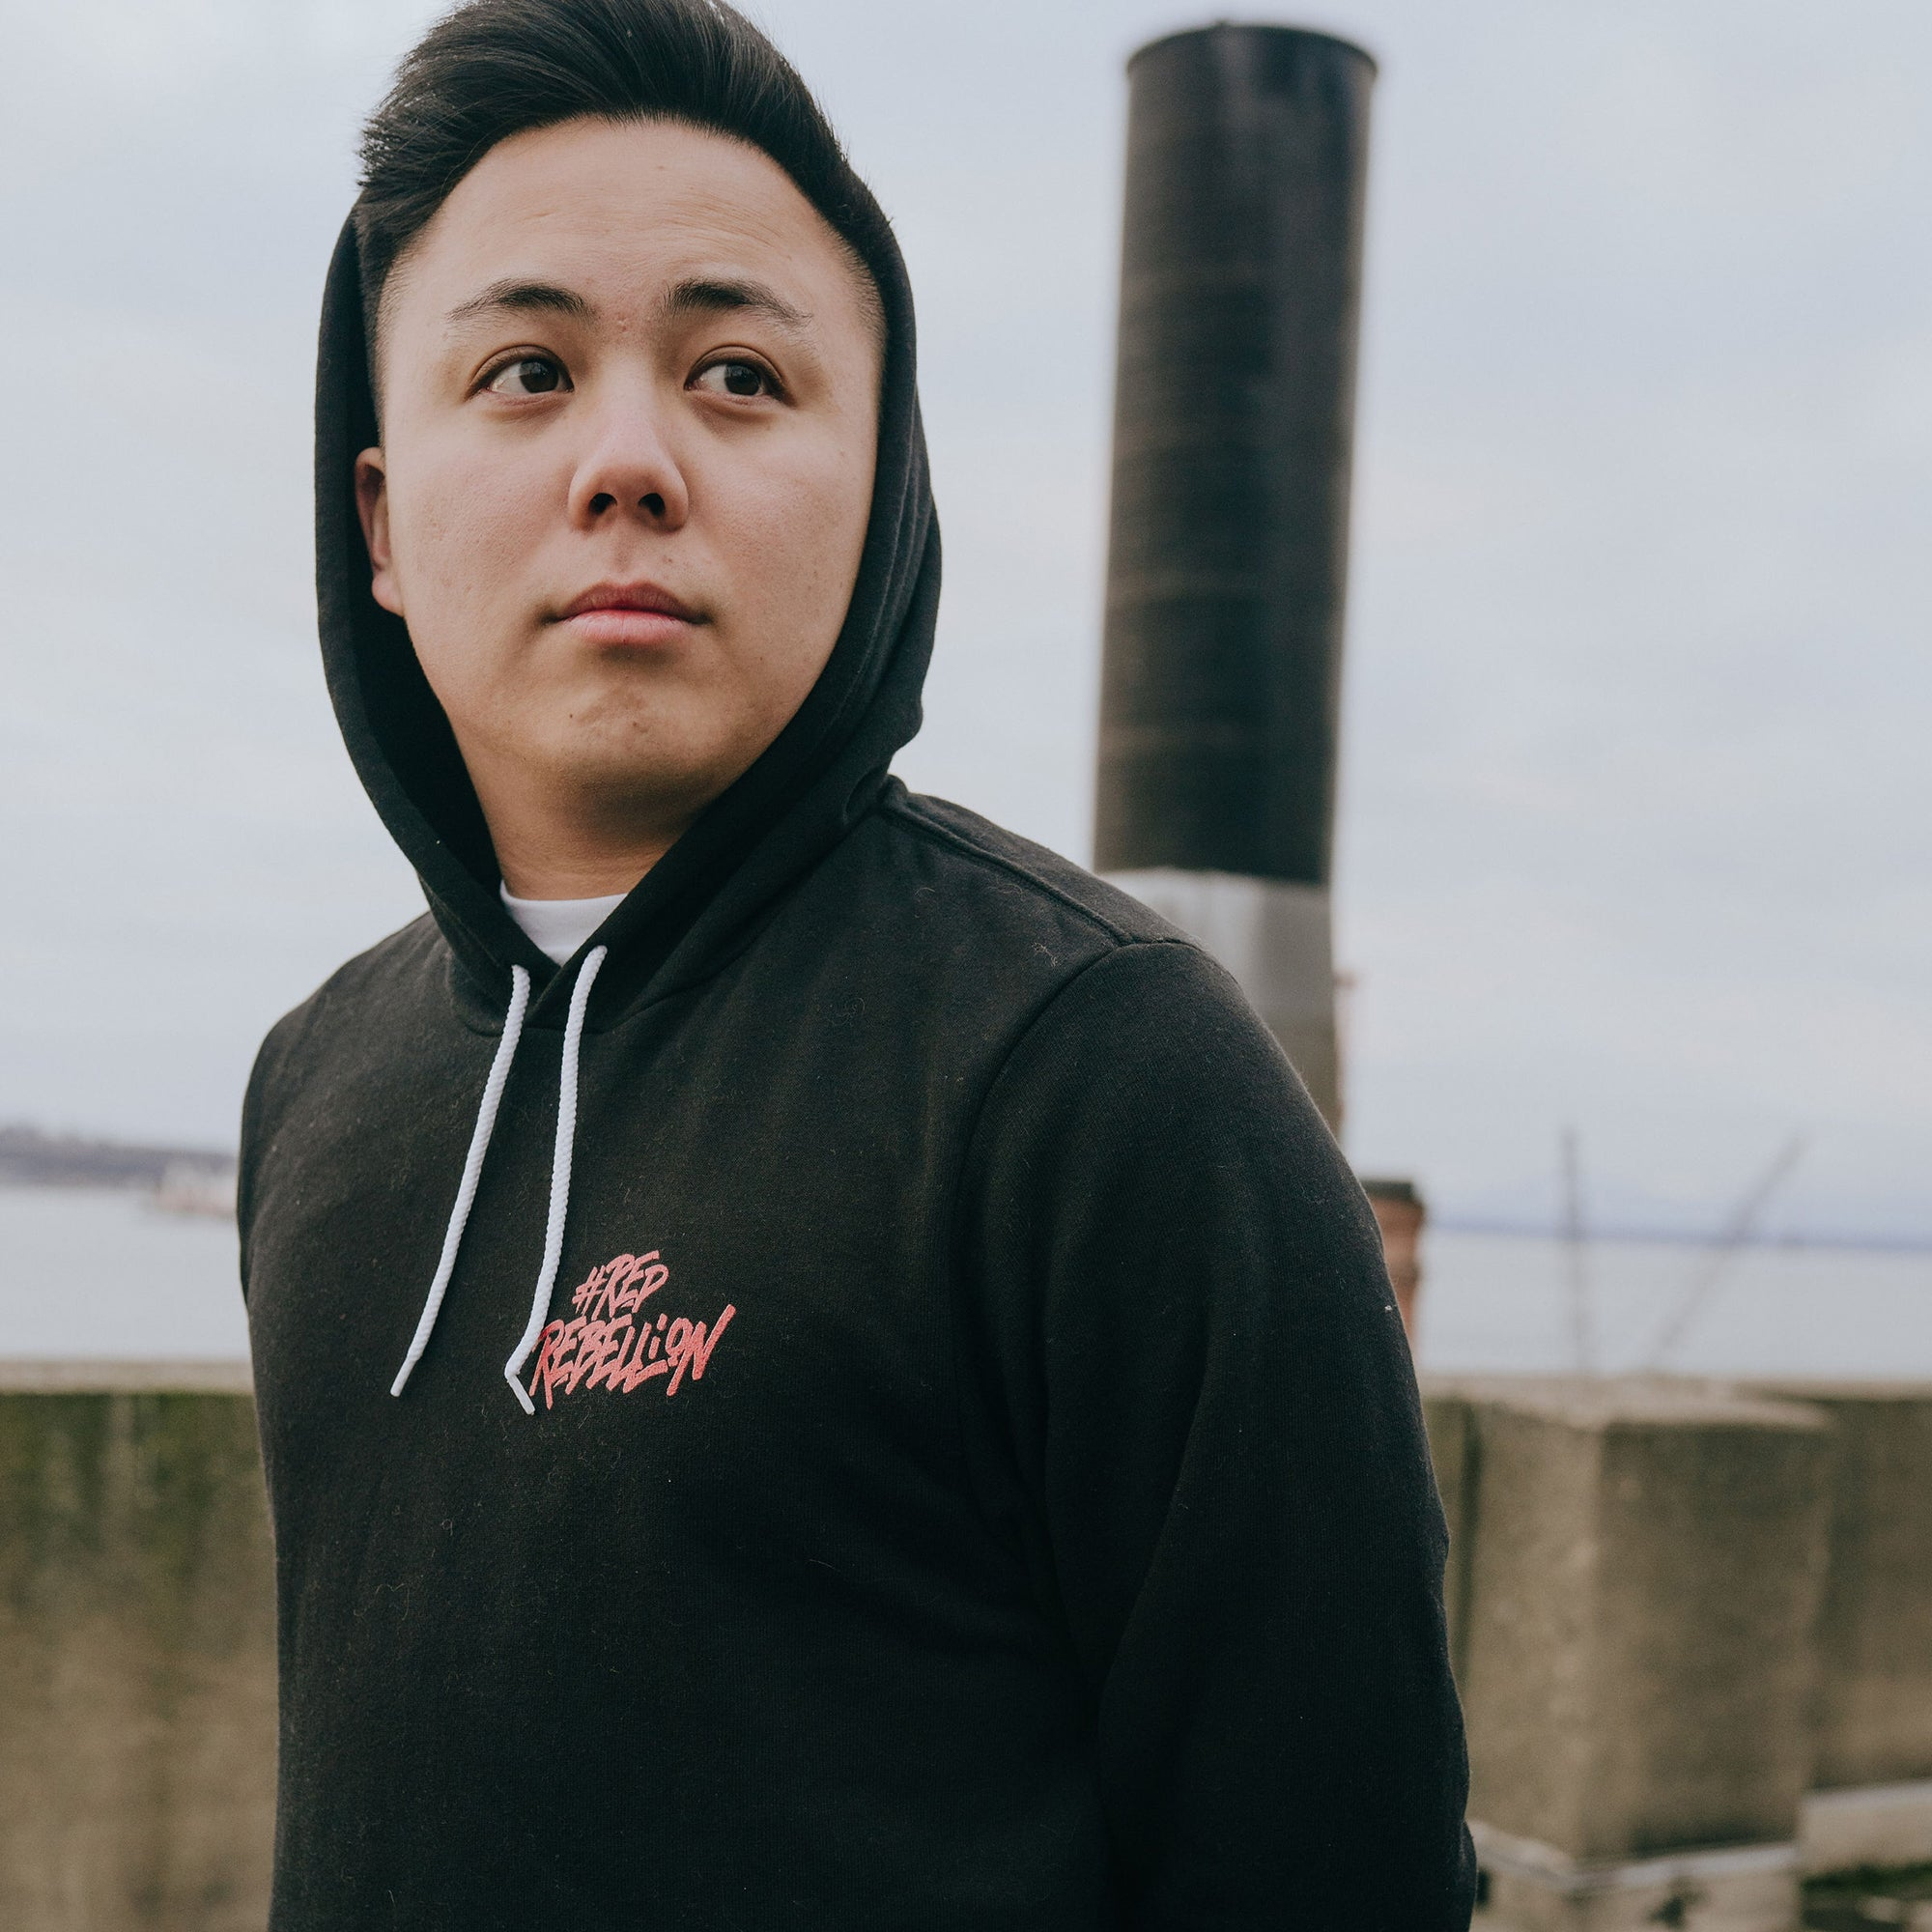 Elevate 2021 Red Rebellion Hoodie